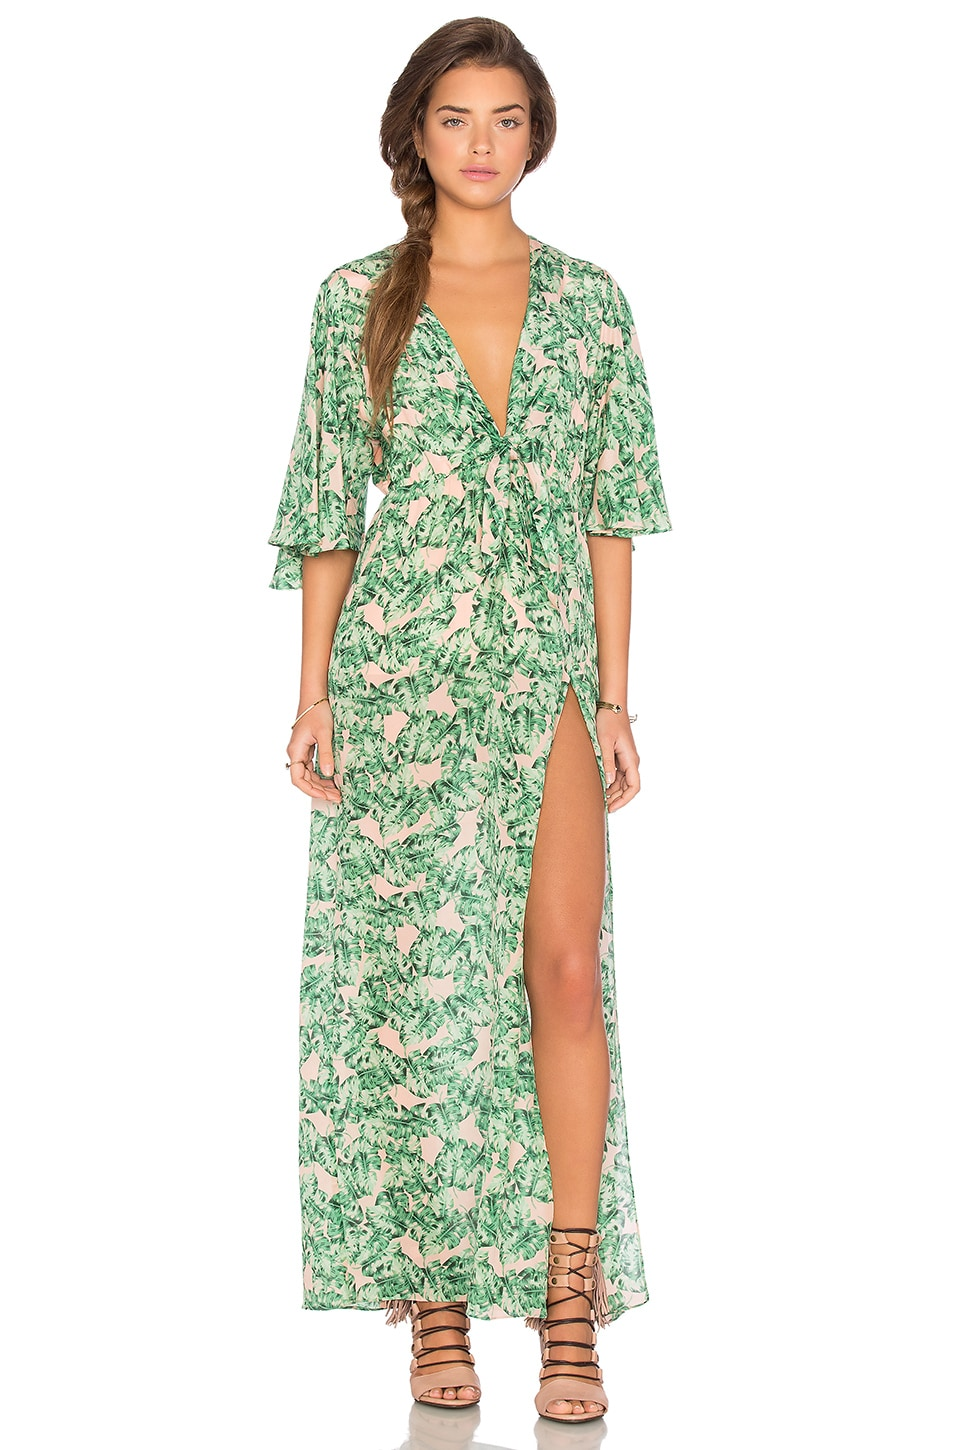 Chloe Oliver Luxxe Life Maxi Dress in Coco Cabana